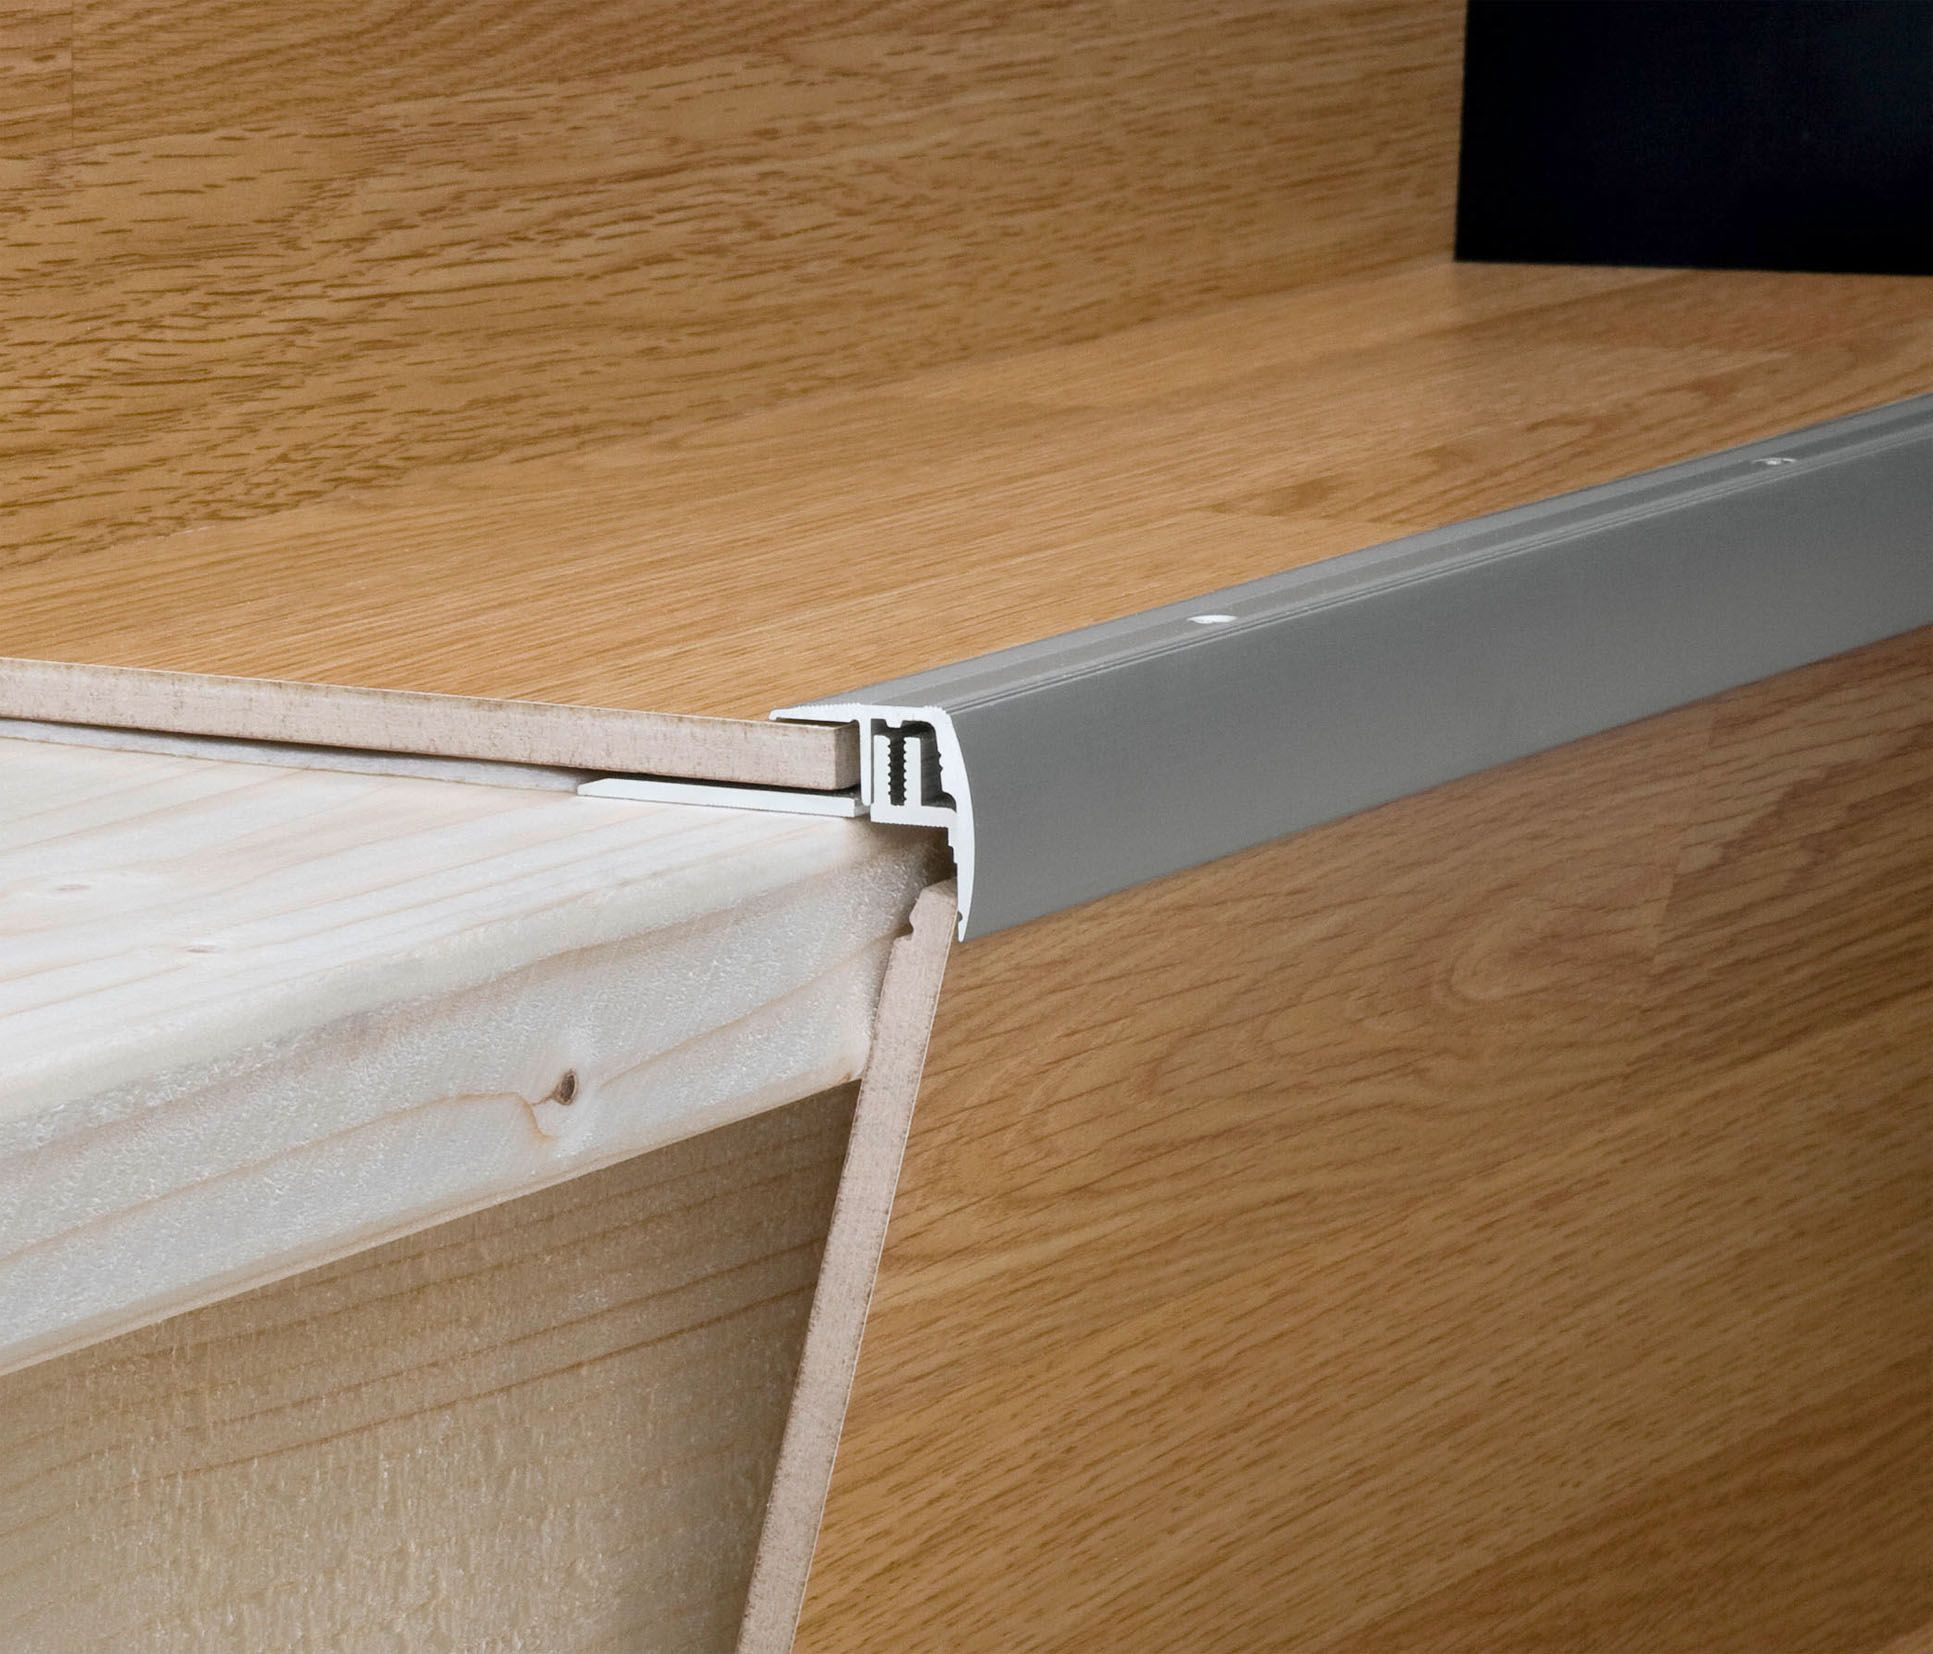 Meister Uk Universal Stair Nosings To Protect The Laminate Joints